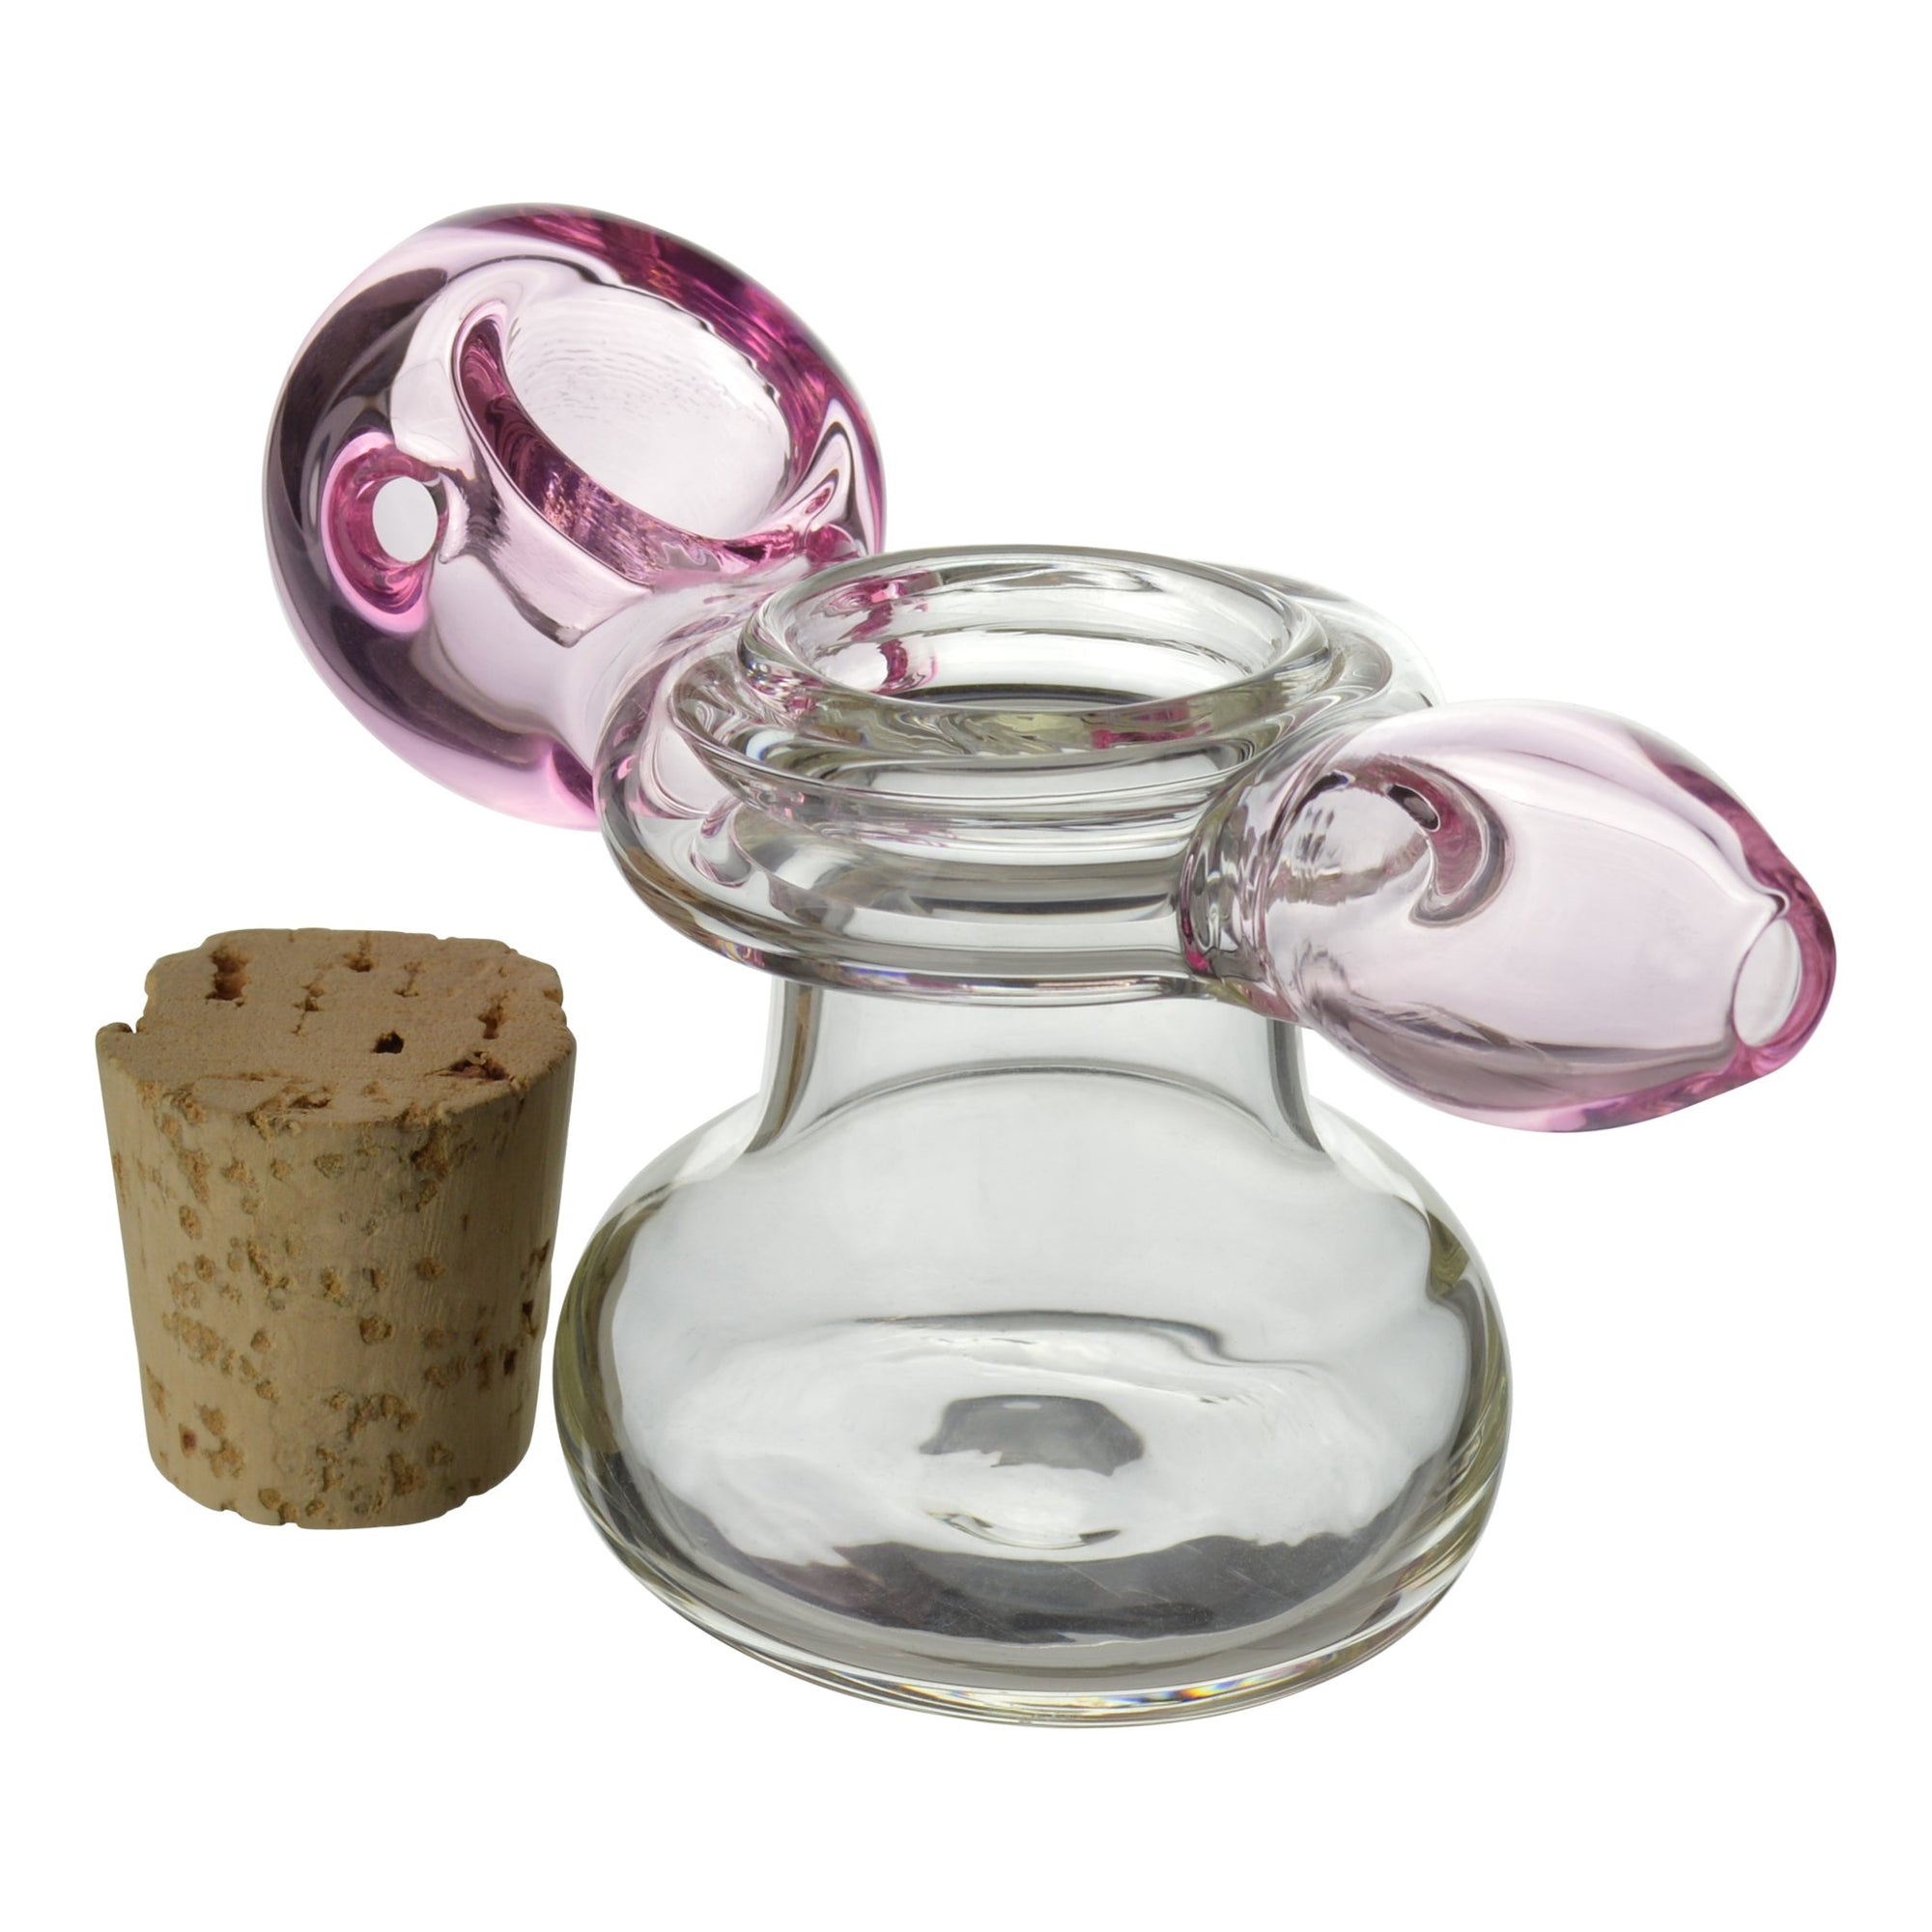 Cute 3.5 inch glass pipe with stash and pink accents removed cork on left 2 in 1 stash and pipe functional travel friendly